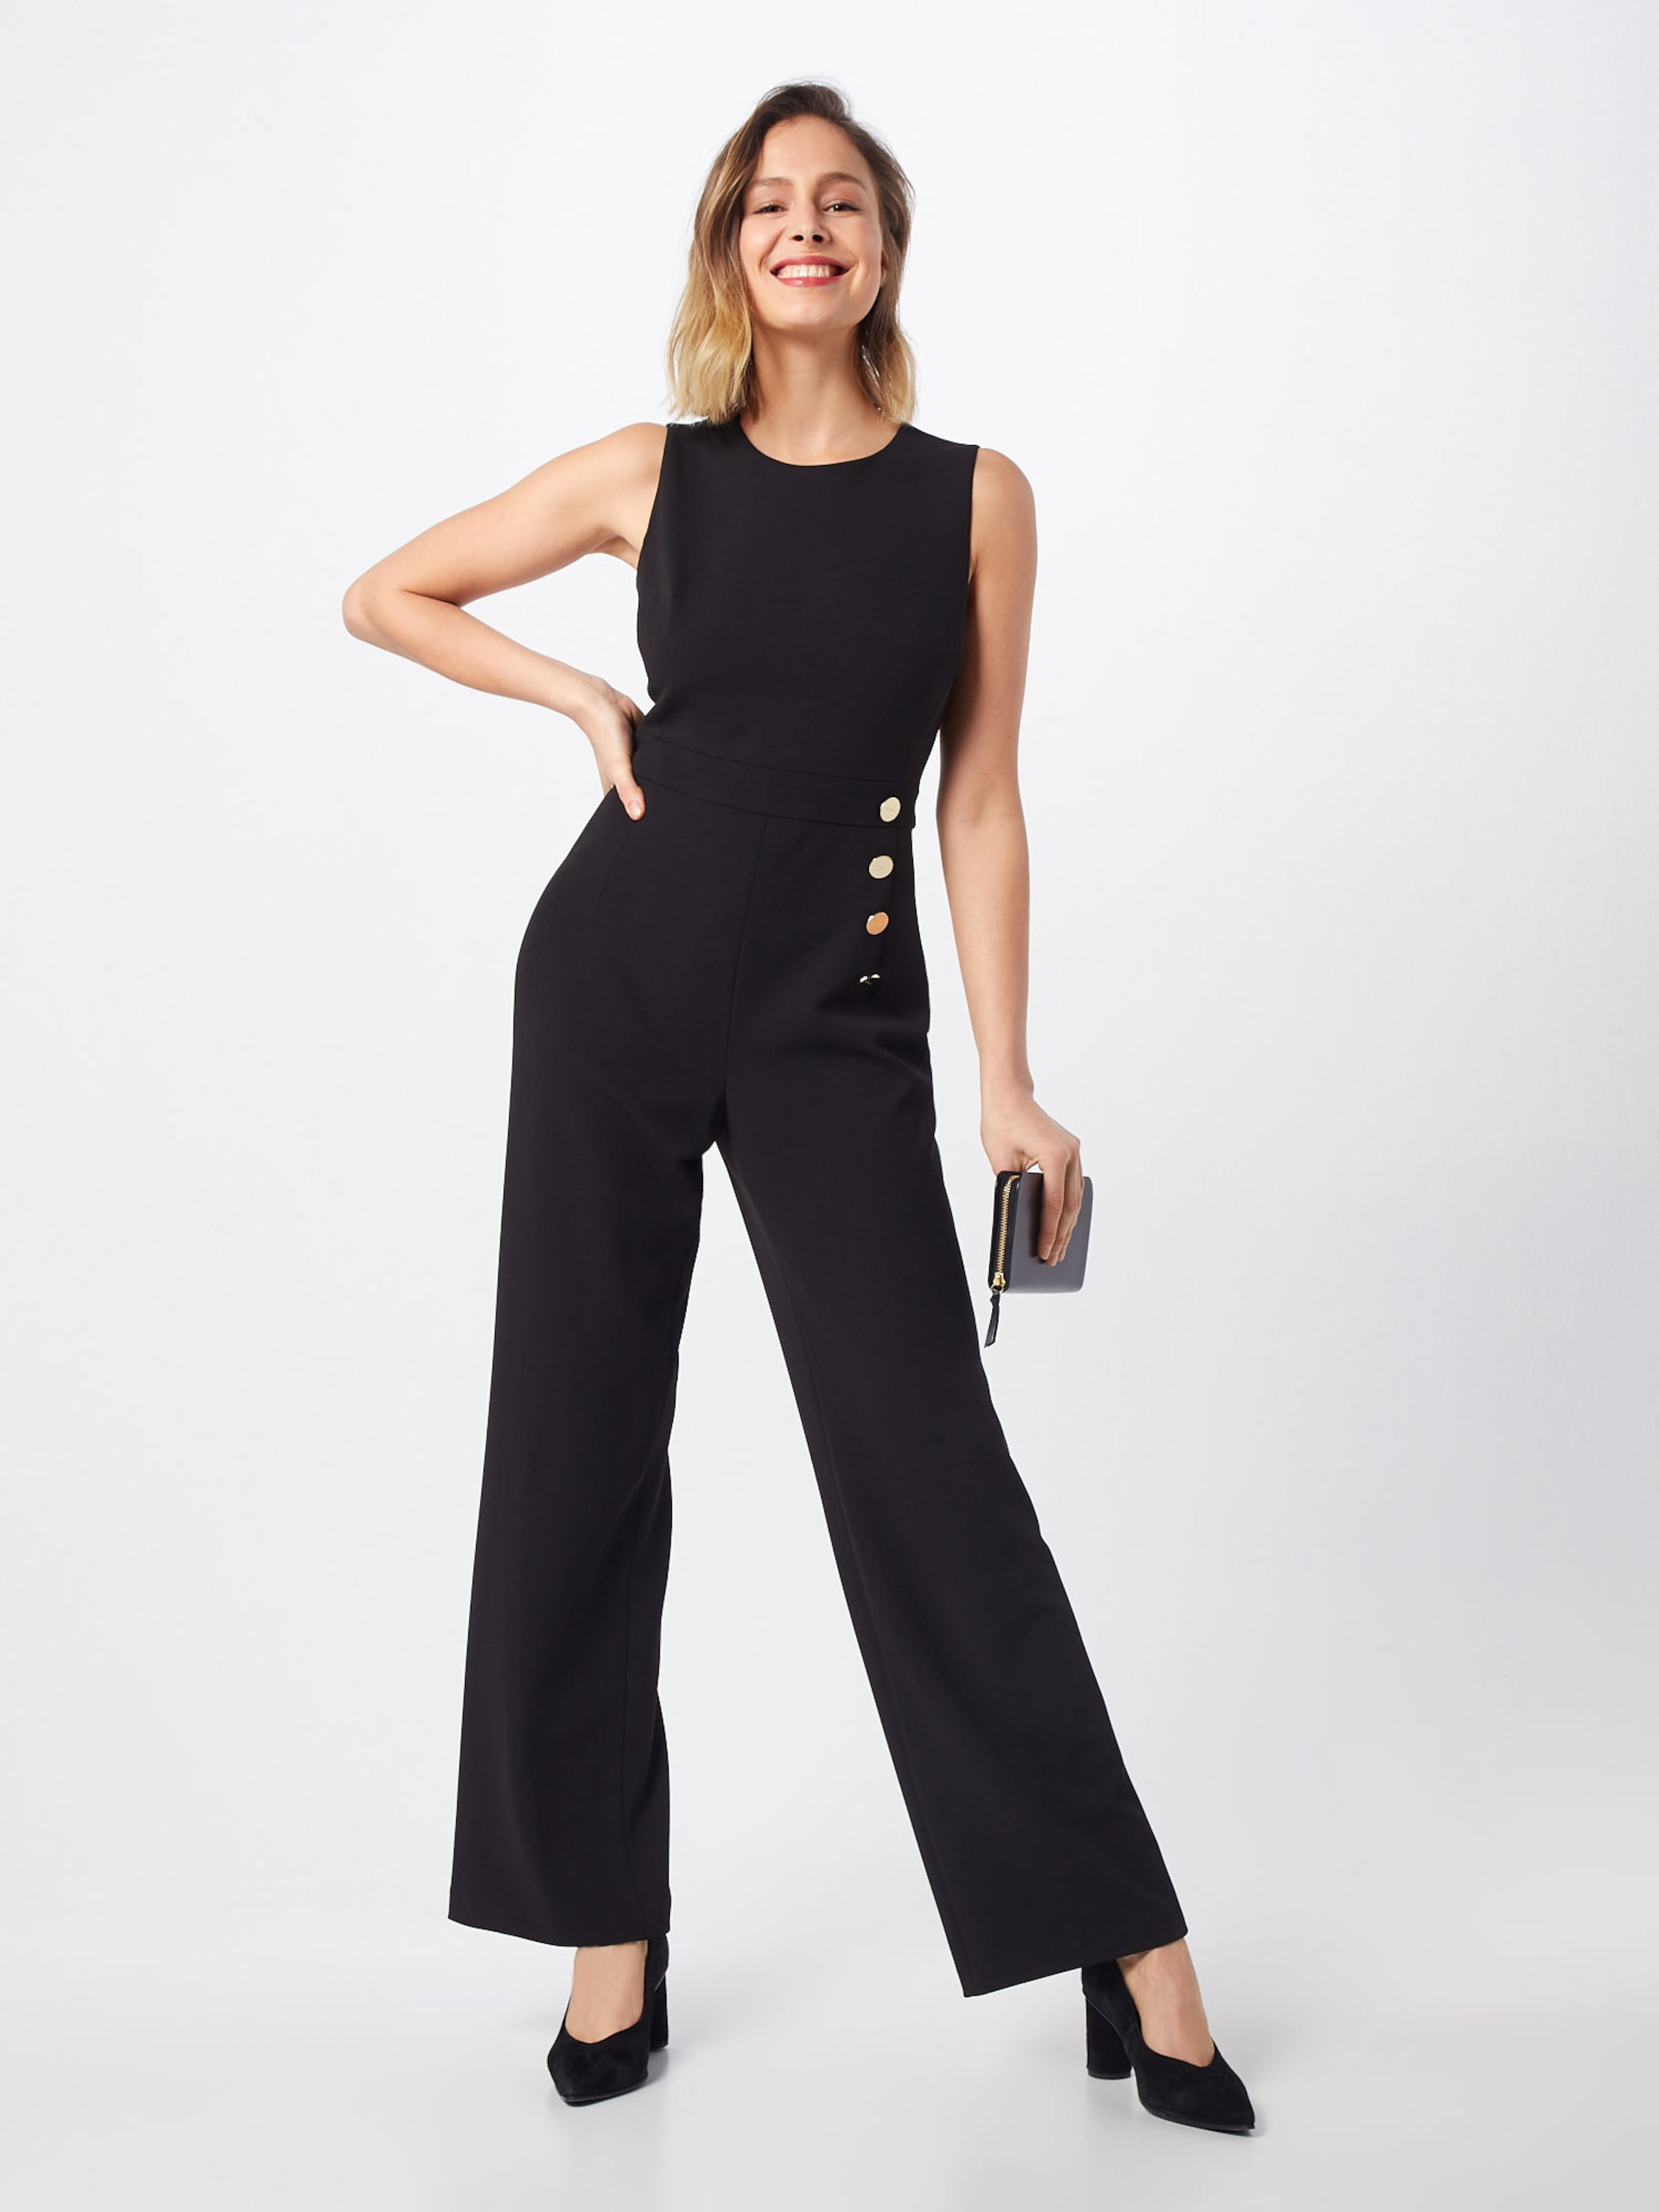 Jumpsuit' Schwarz Dkny 'sleeveless Overall In 6yfbY7gv